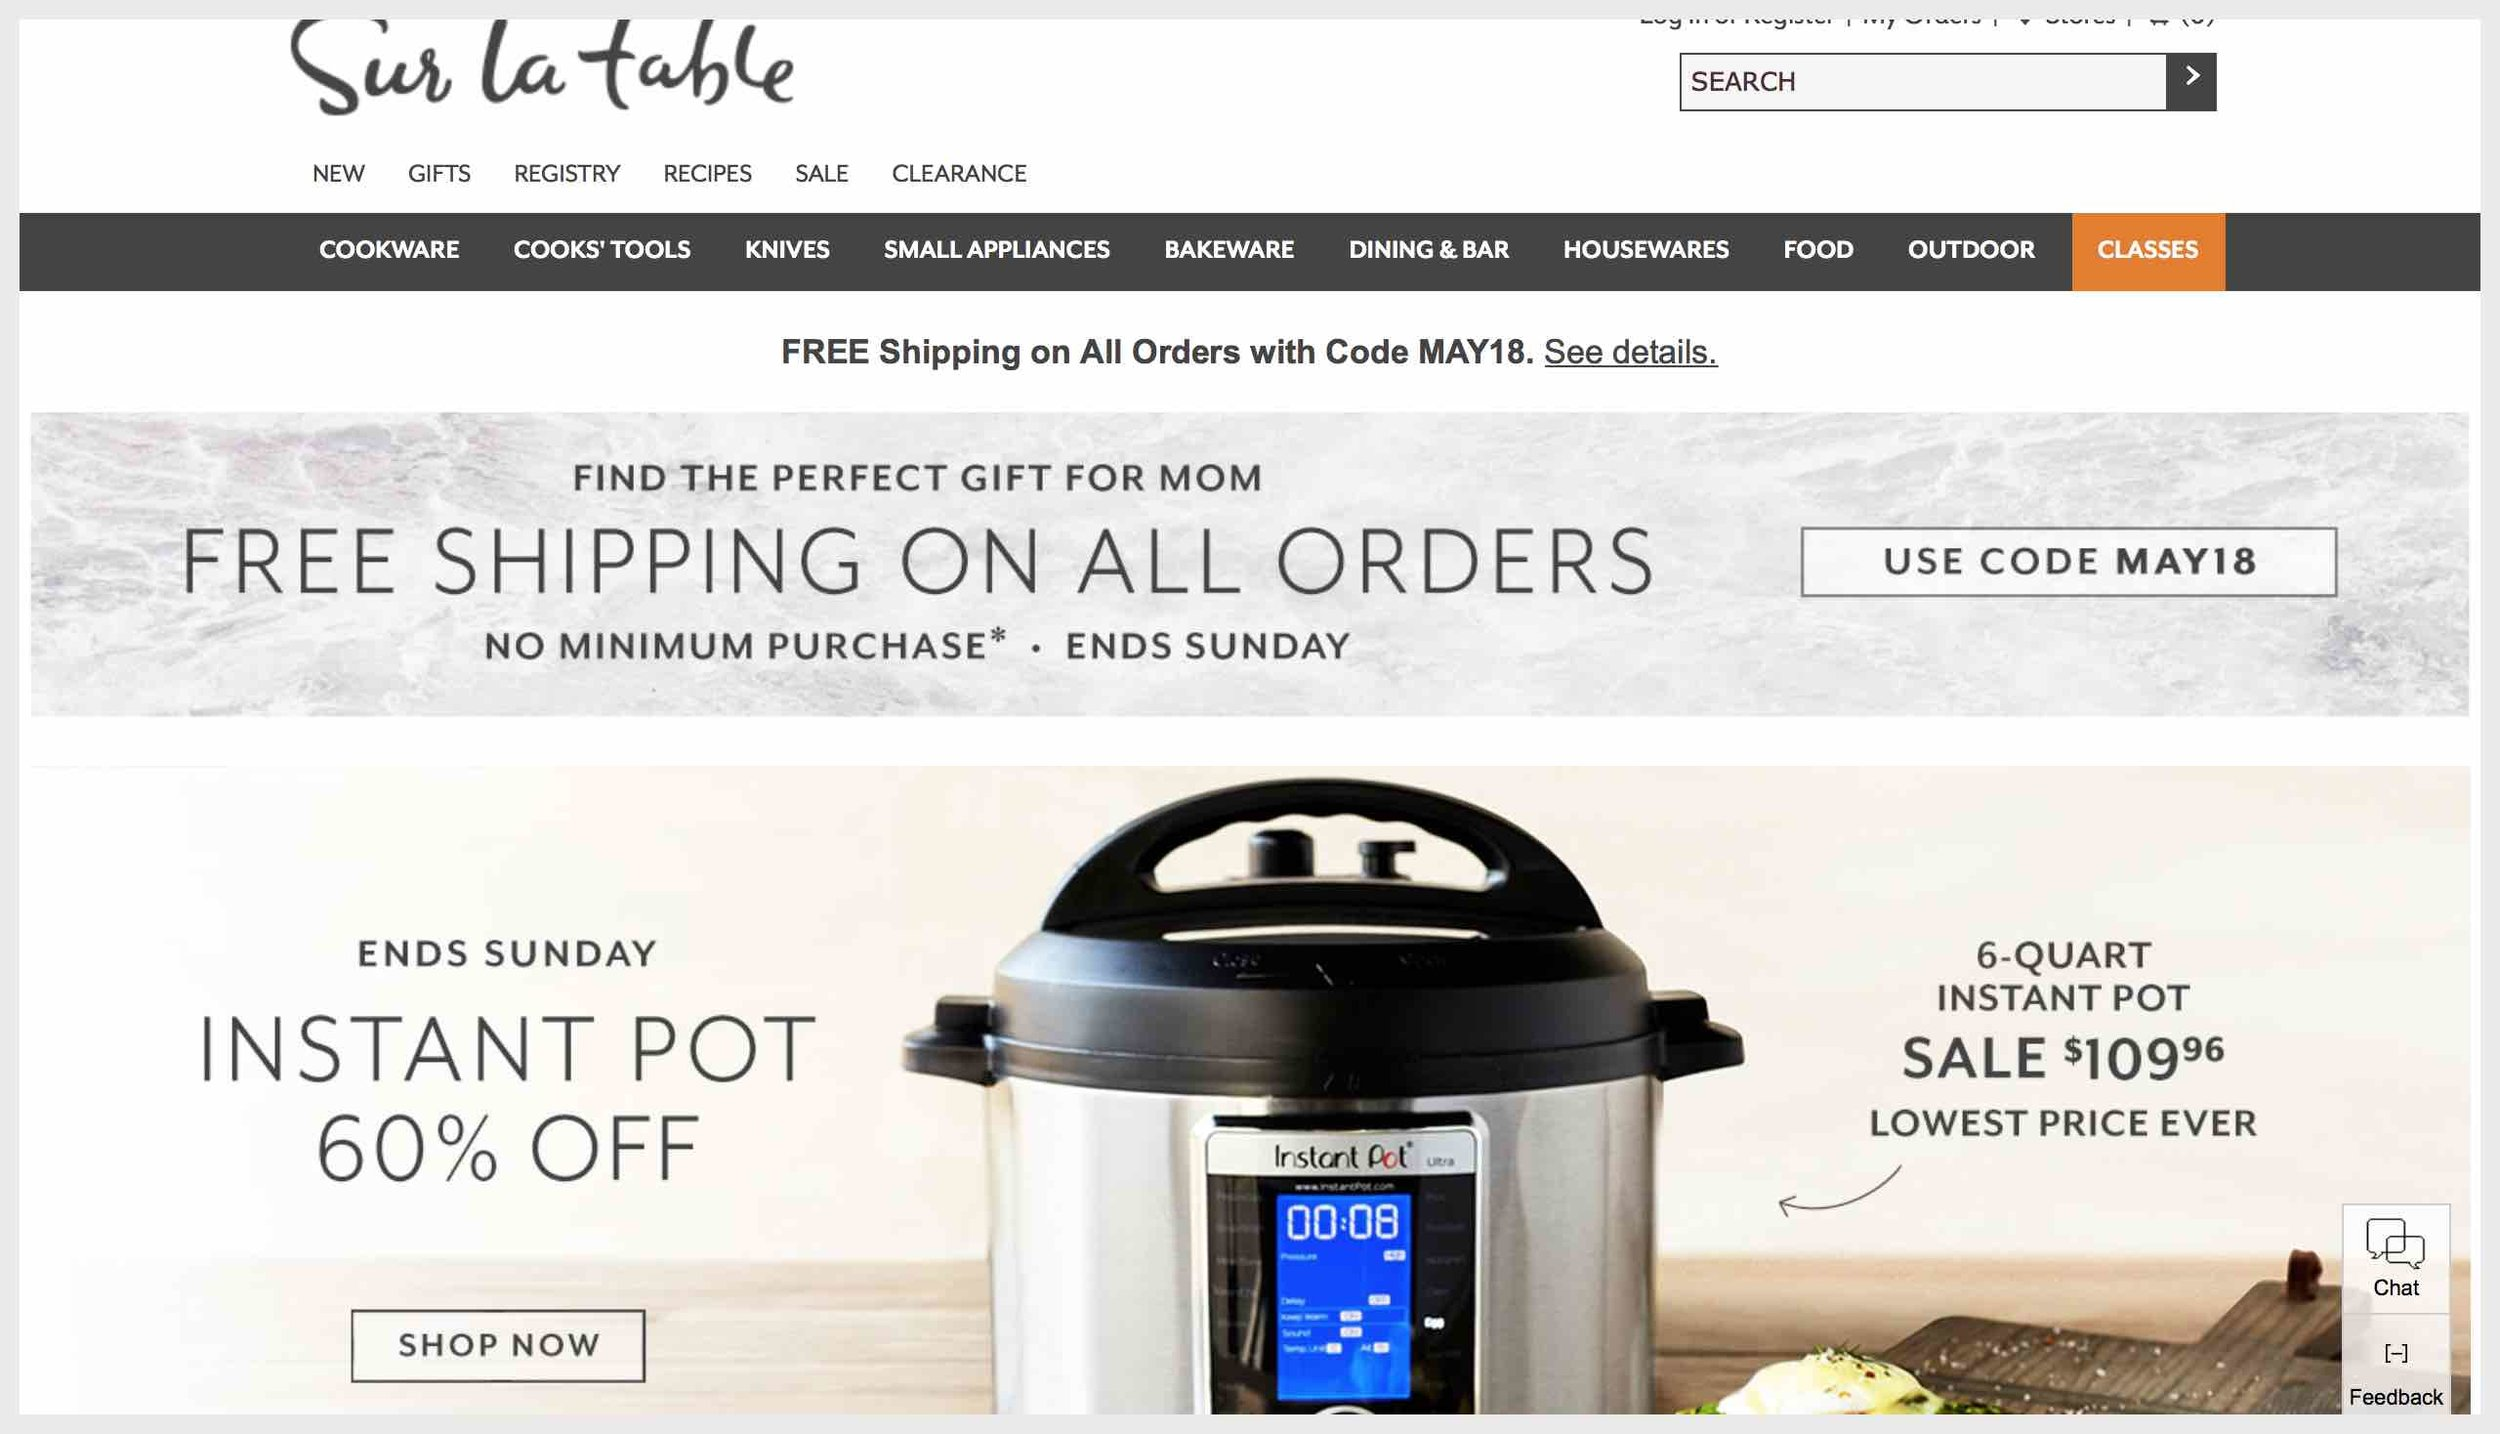 Sur La Table's homepage with shop CTAs